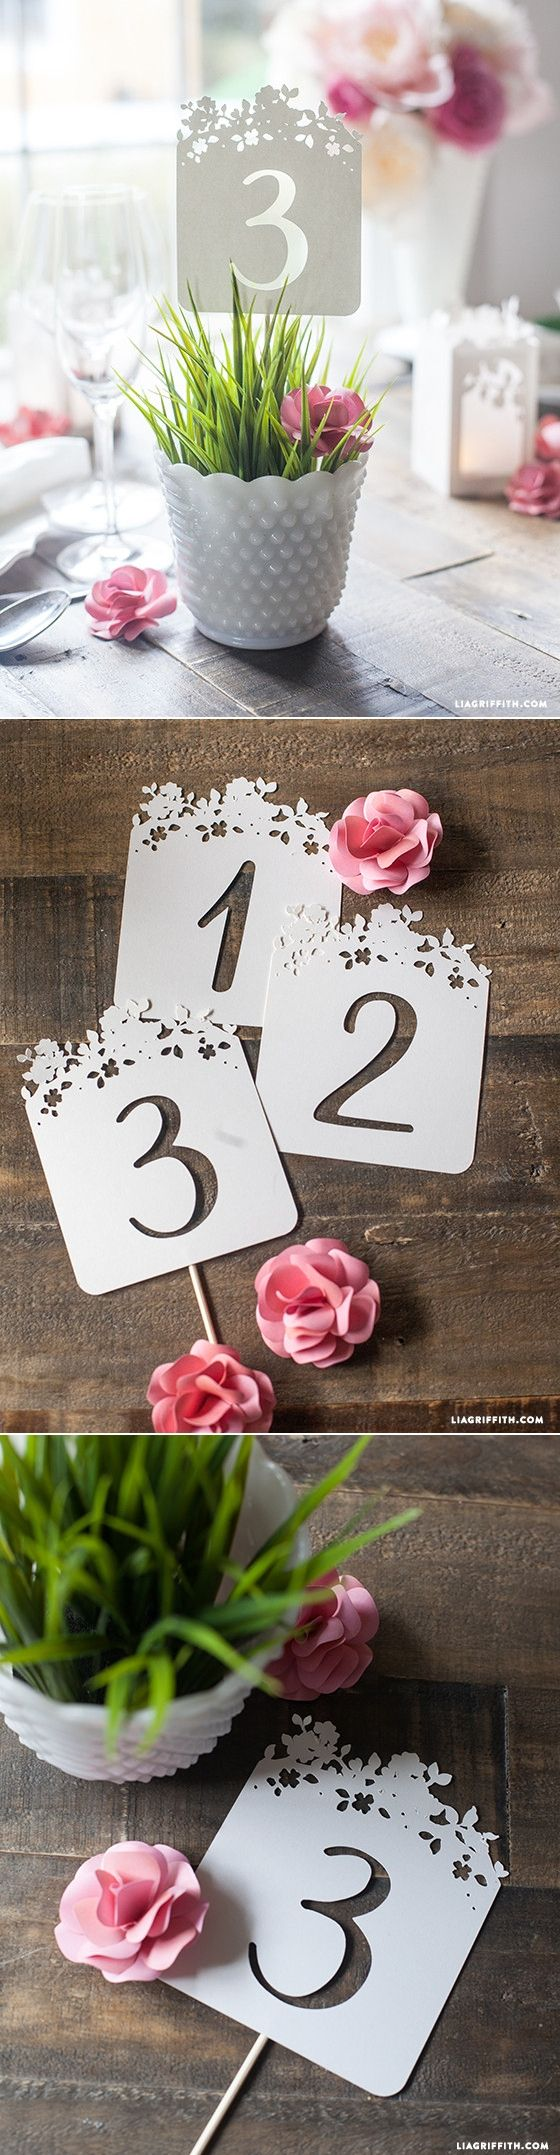 DIY Wedding Table Numbers. More DIY Wedding Ideas at www.LiaGriffith.com